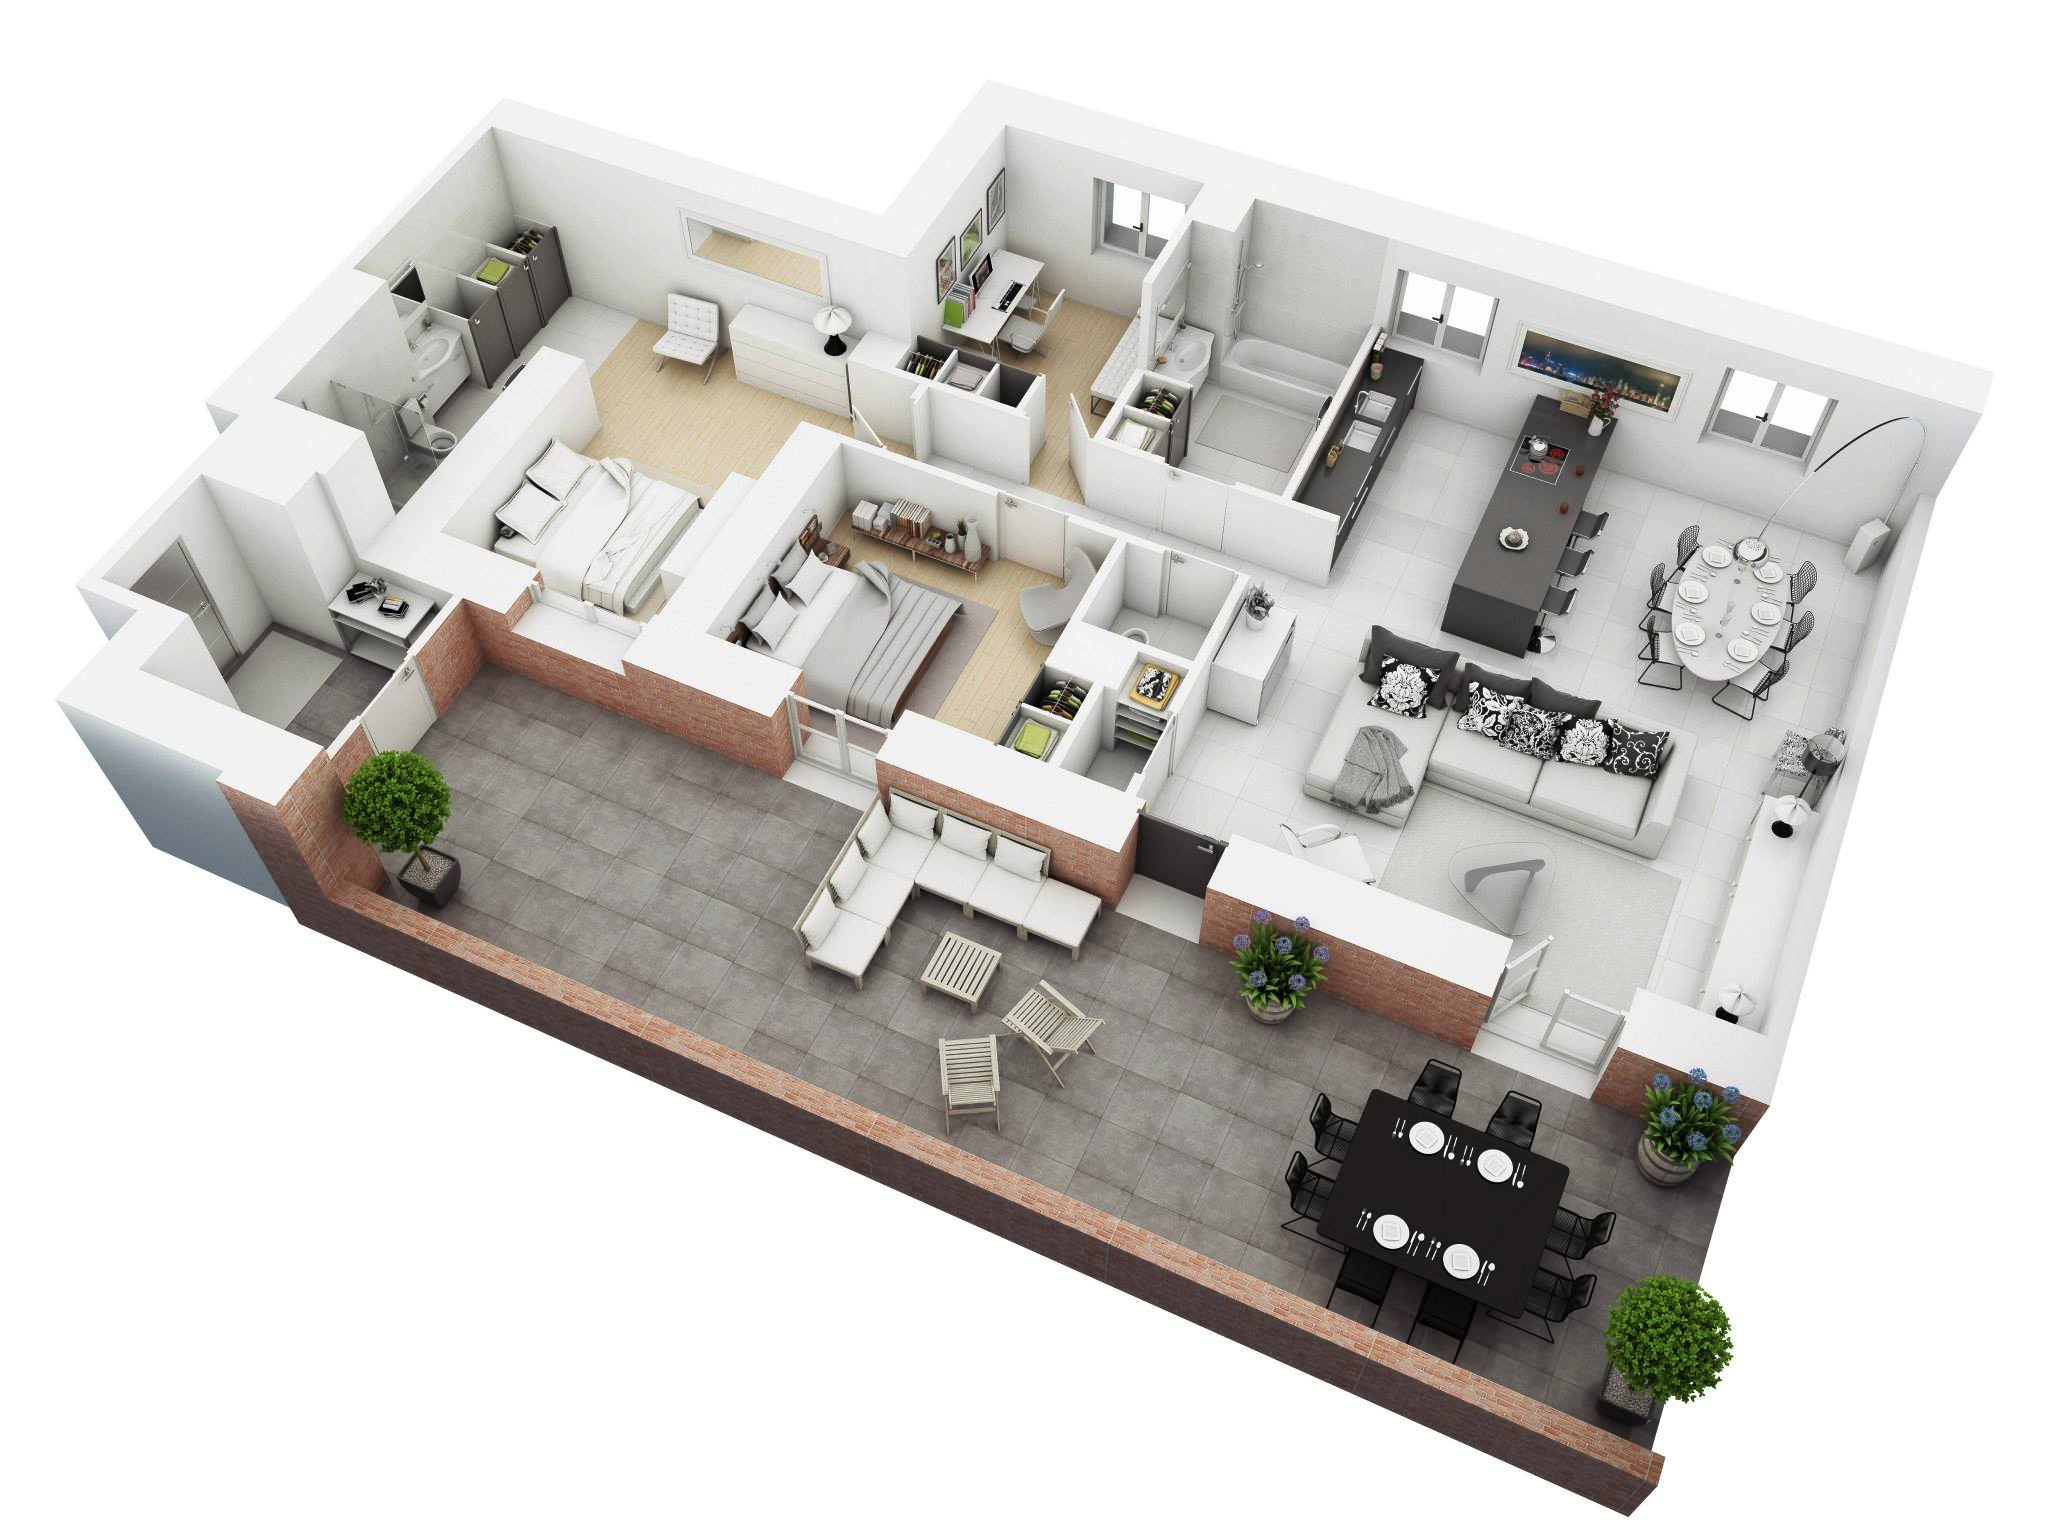 25 More 3 Bedroom 3D Floor Plans – How To Get Floor Plans For A House